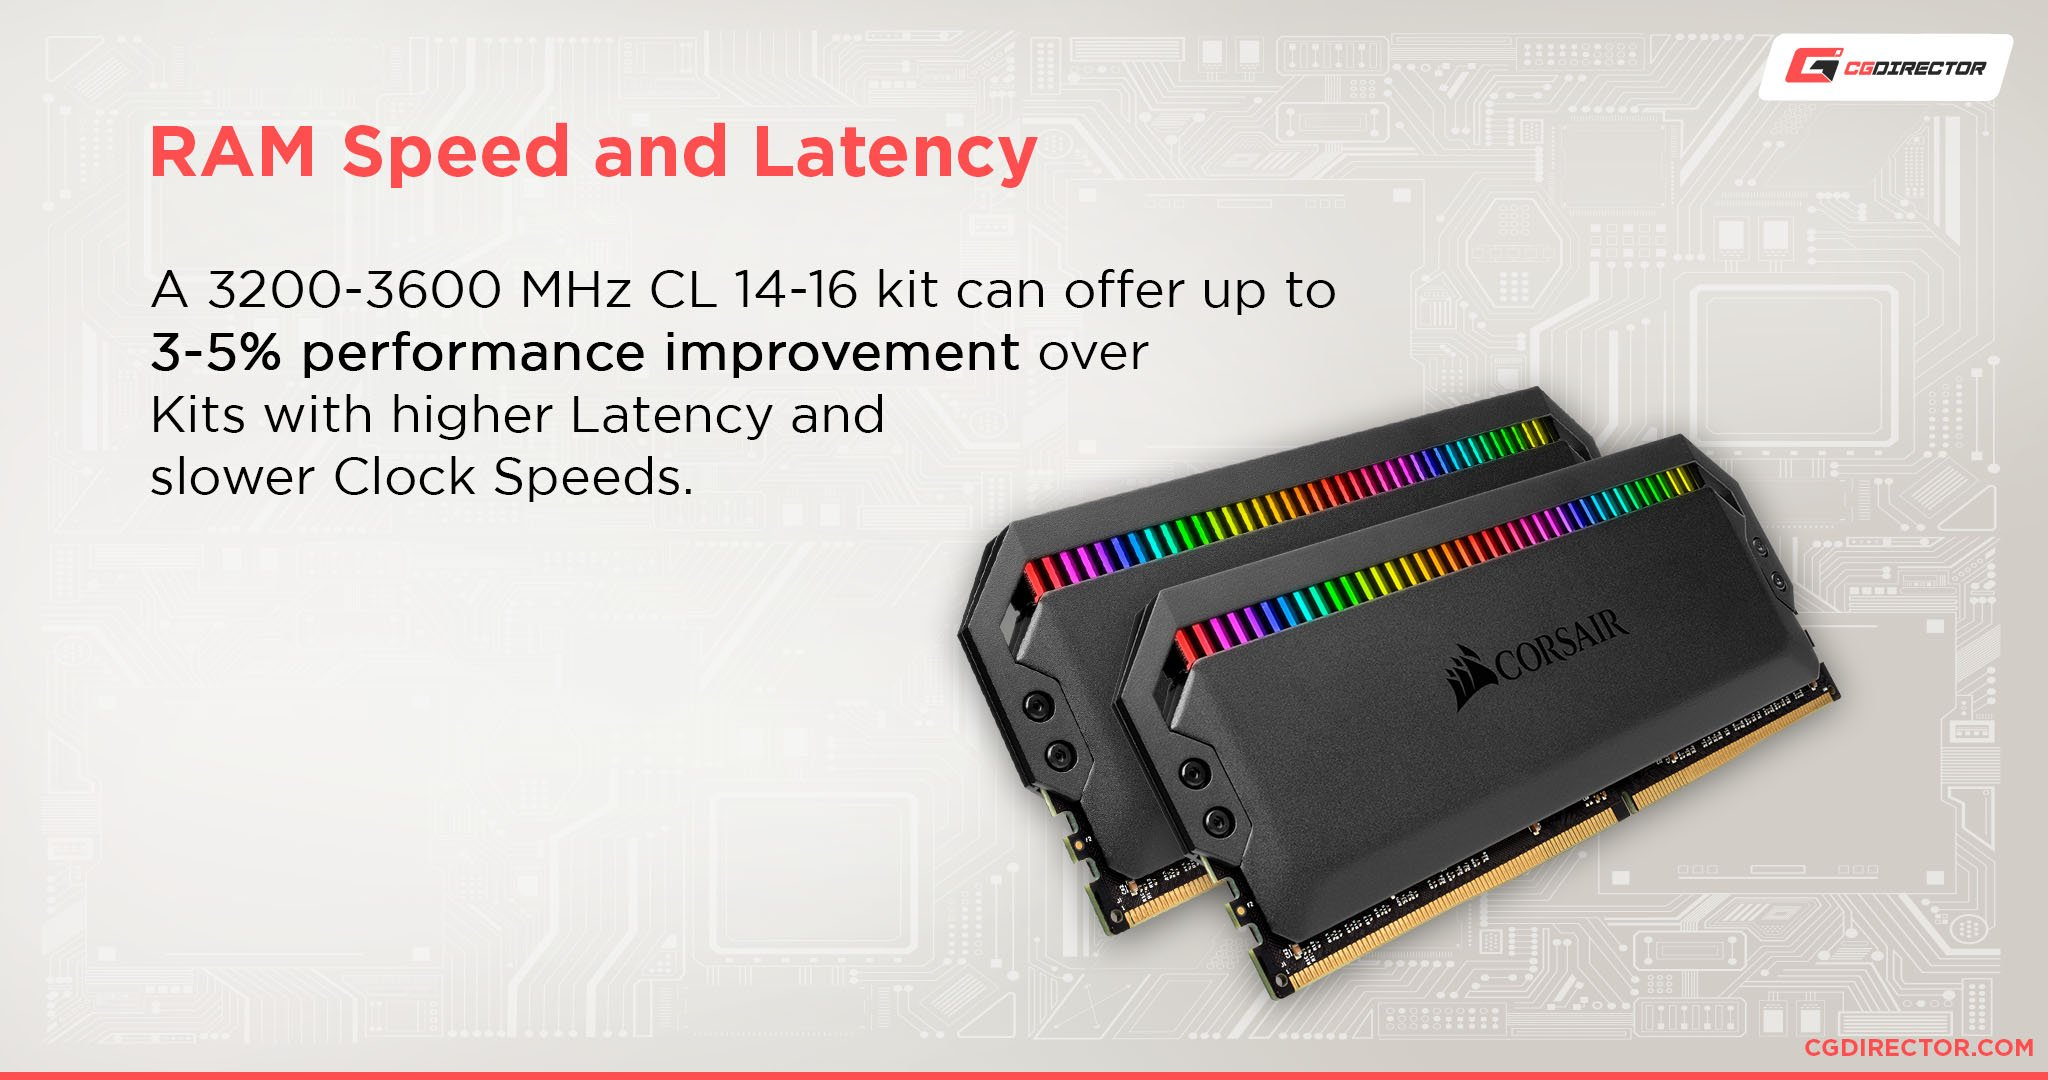 Performance Improvement through RAM Modules with lower latency and higher clock speeds